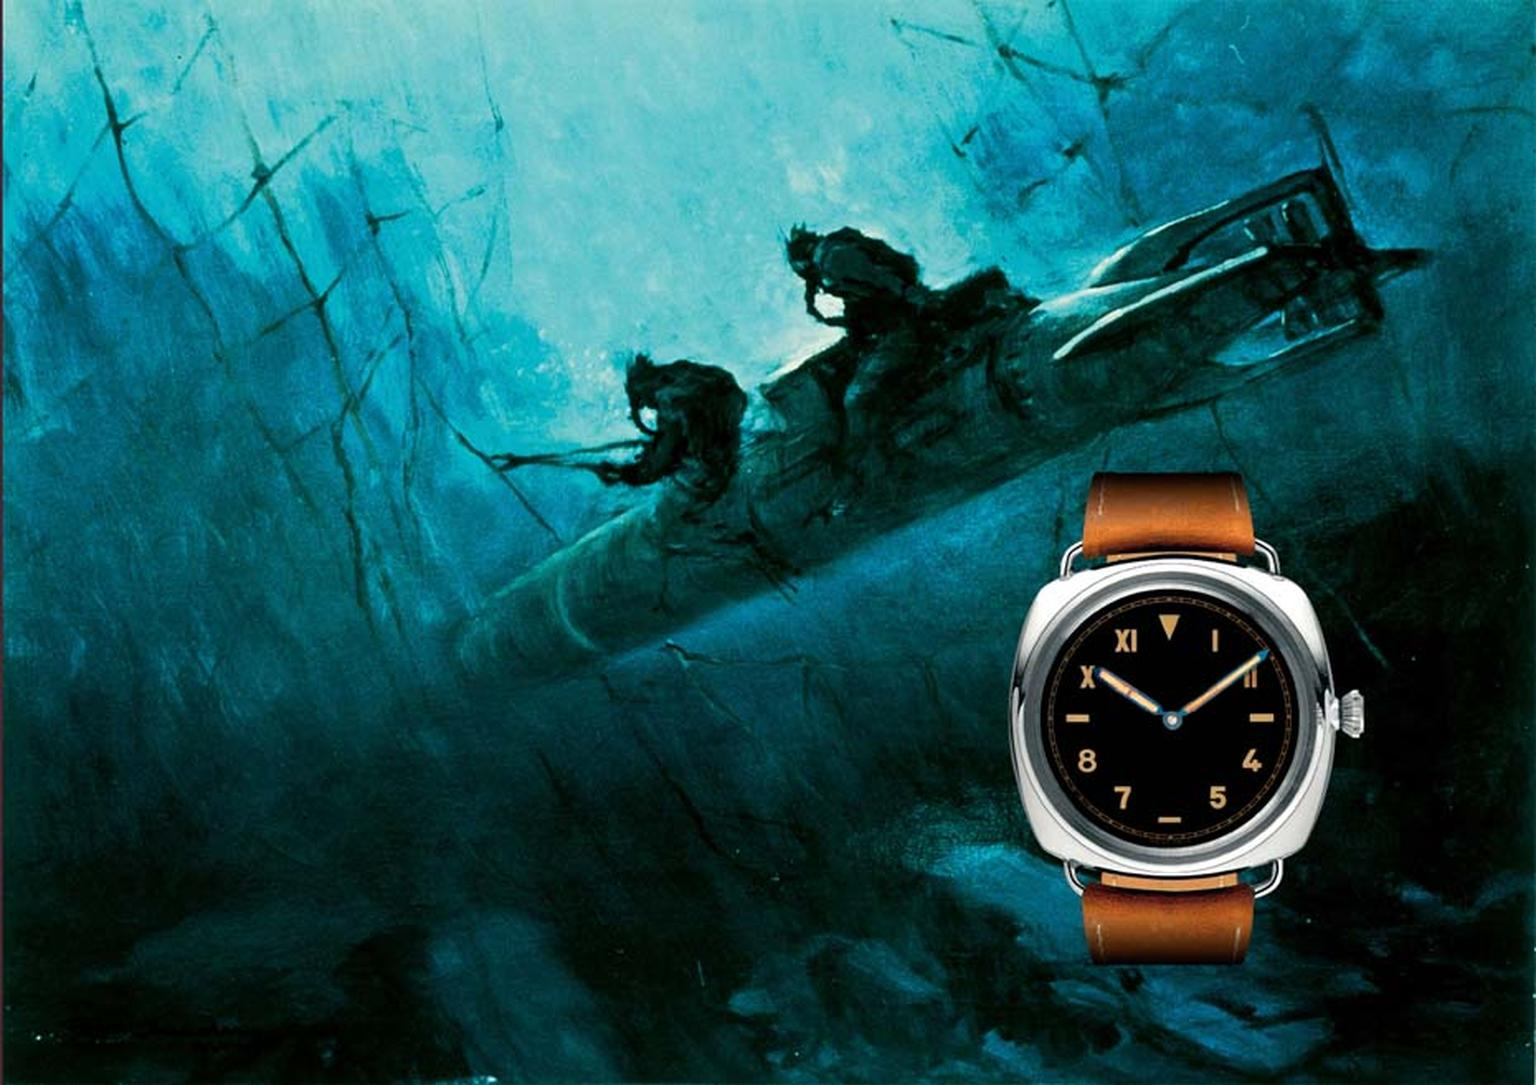 Panerai was the top secret purveyor to Italy's Royal Navy of precision underwater instruments that glowed in the dark. Covert stealth operations included the 1941 Raid on Alexandria in which frogmen mounted on their submersible torpedoes placed limpet min